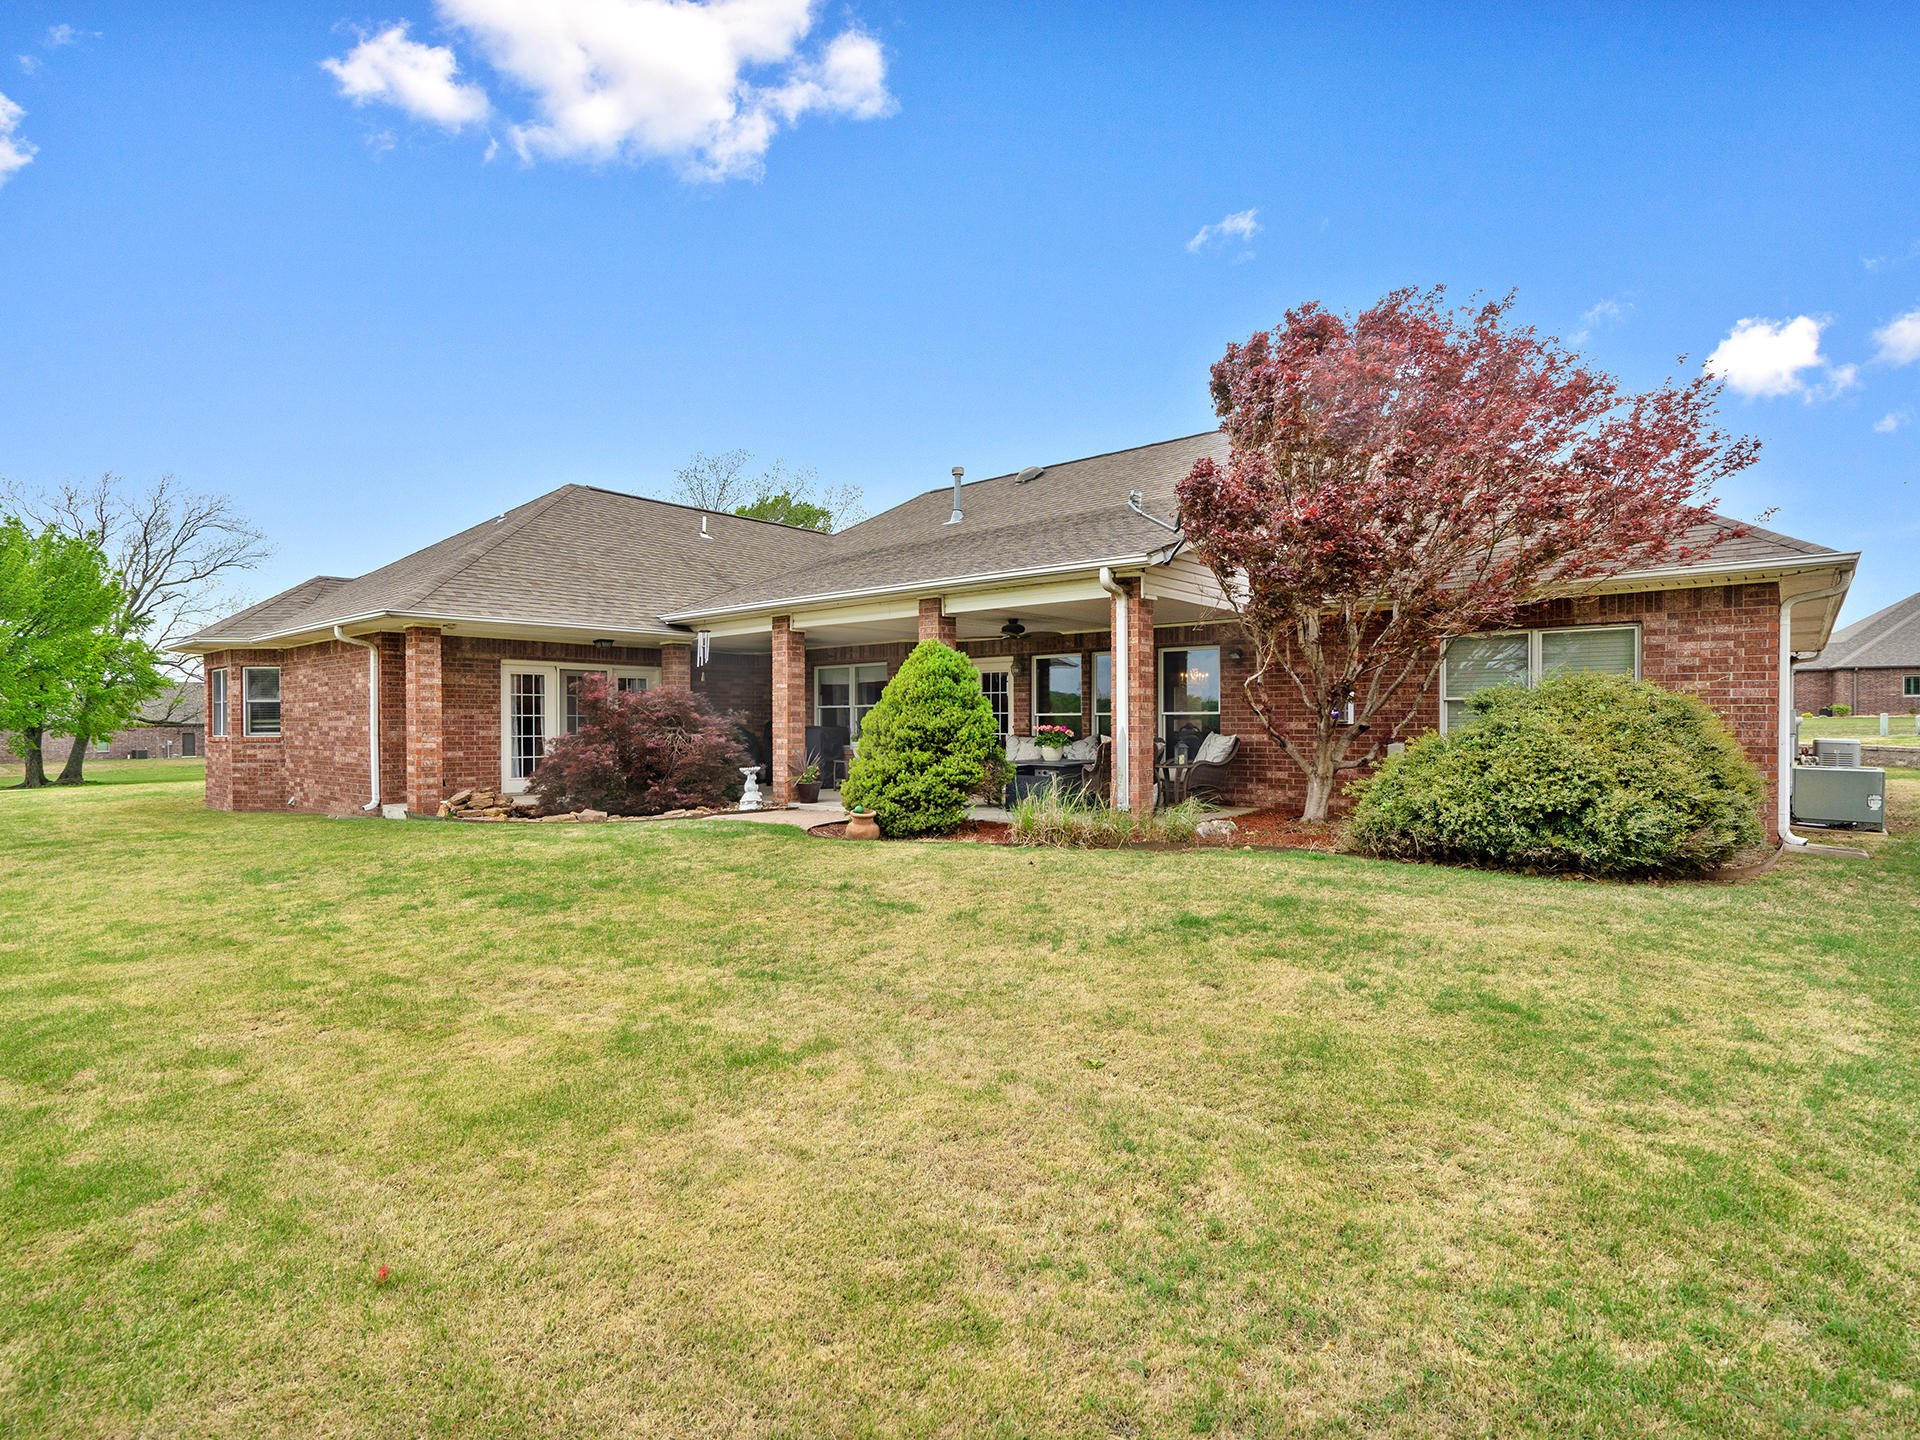 Closed | 25 Twin Creeks Lane Pryor, OK 74361 24